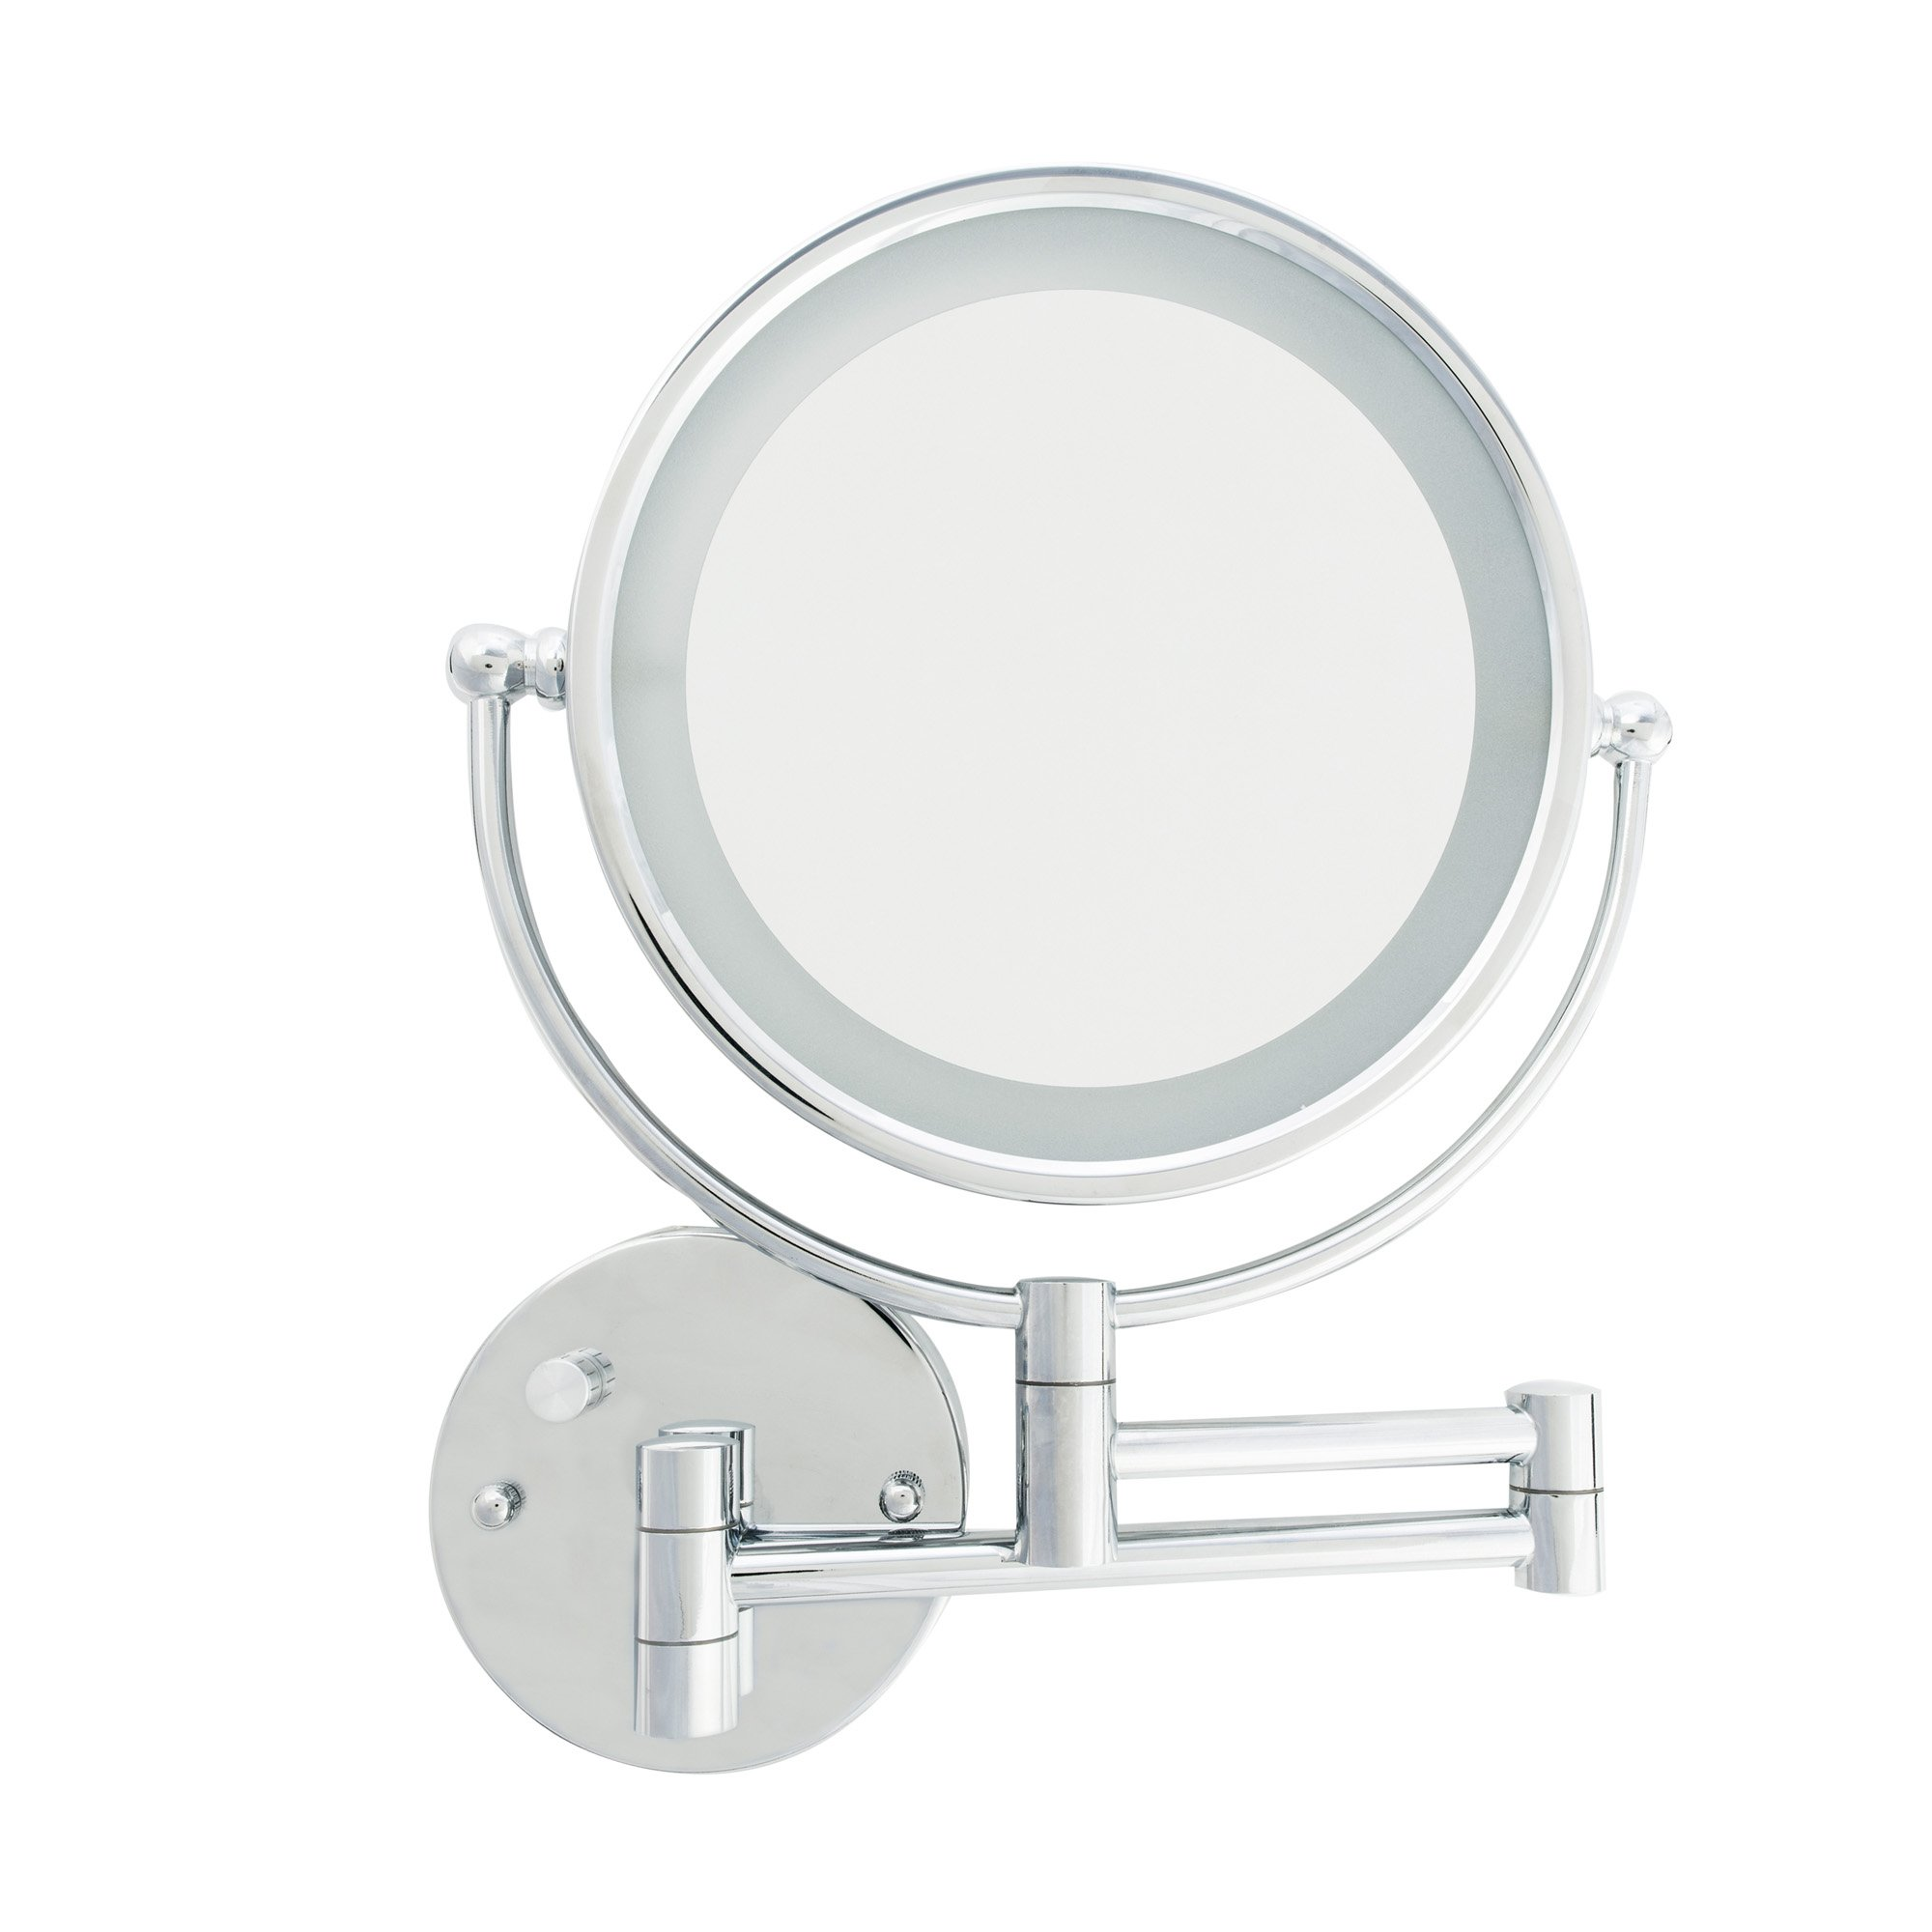 Danielle Creations Chrome LED Lighted Makeup Mirror with Wall Mount, 5X Magnification